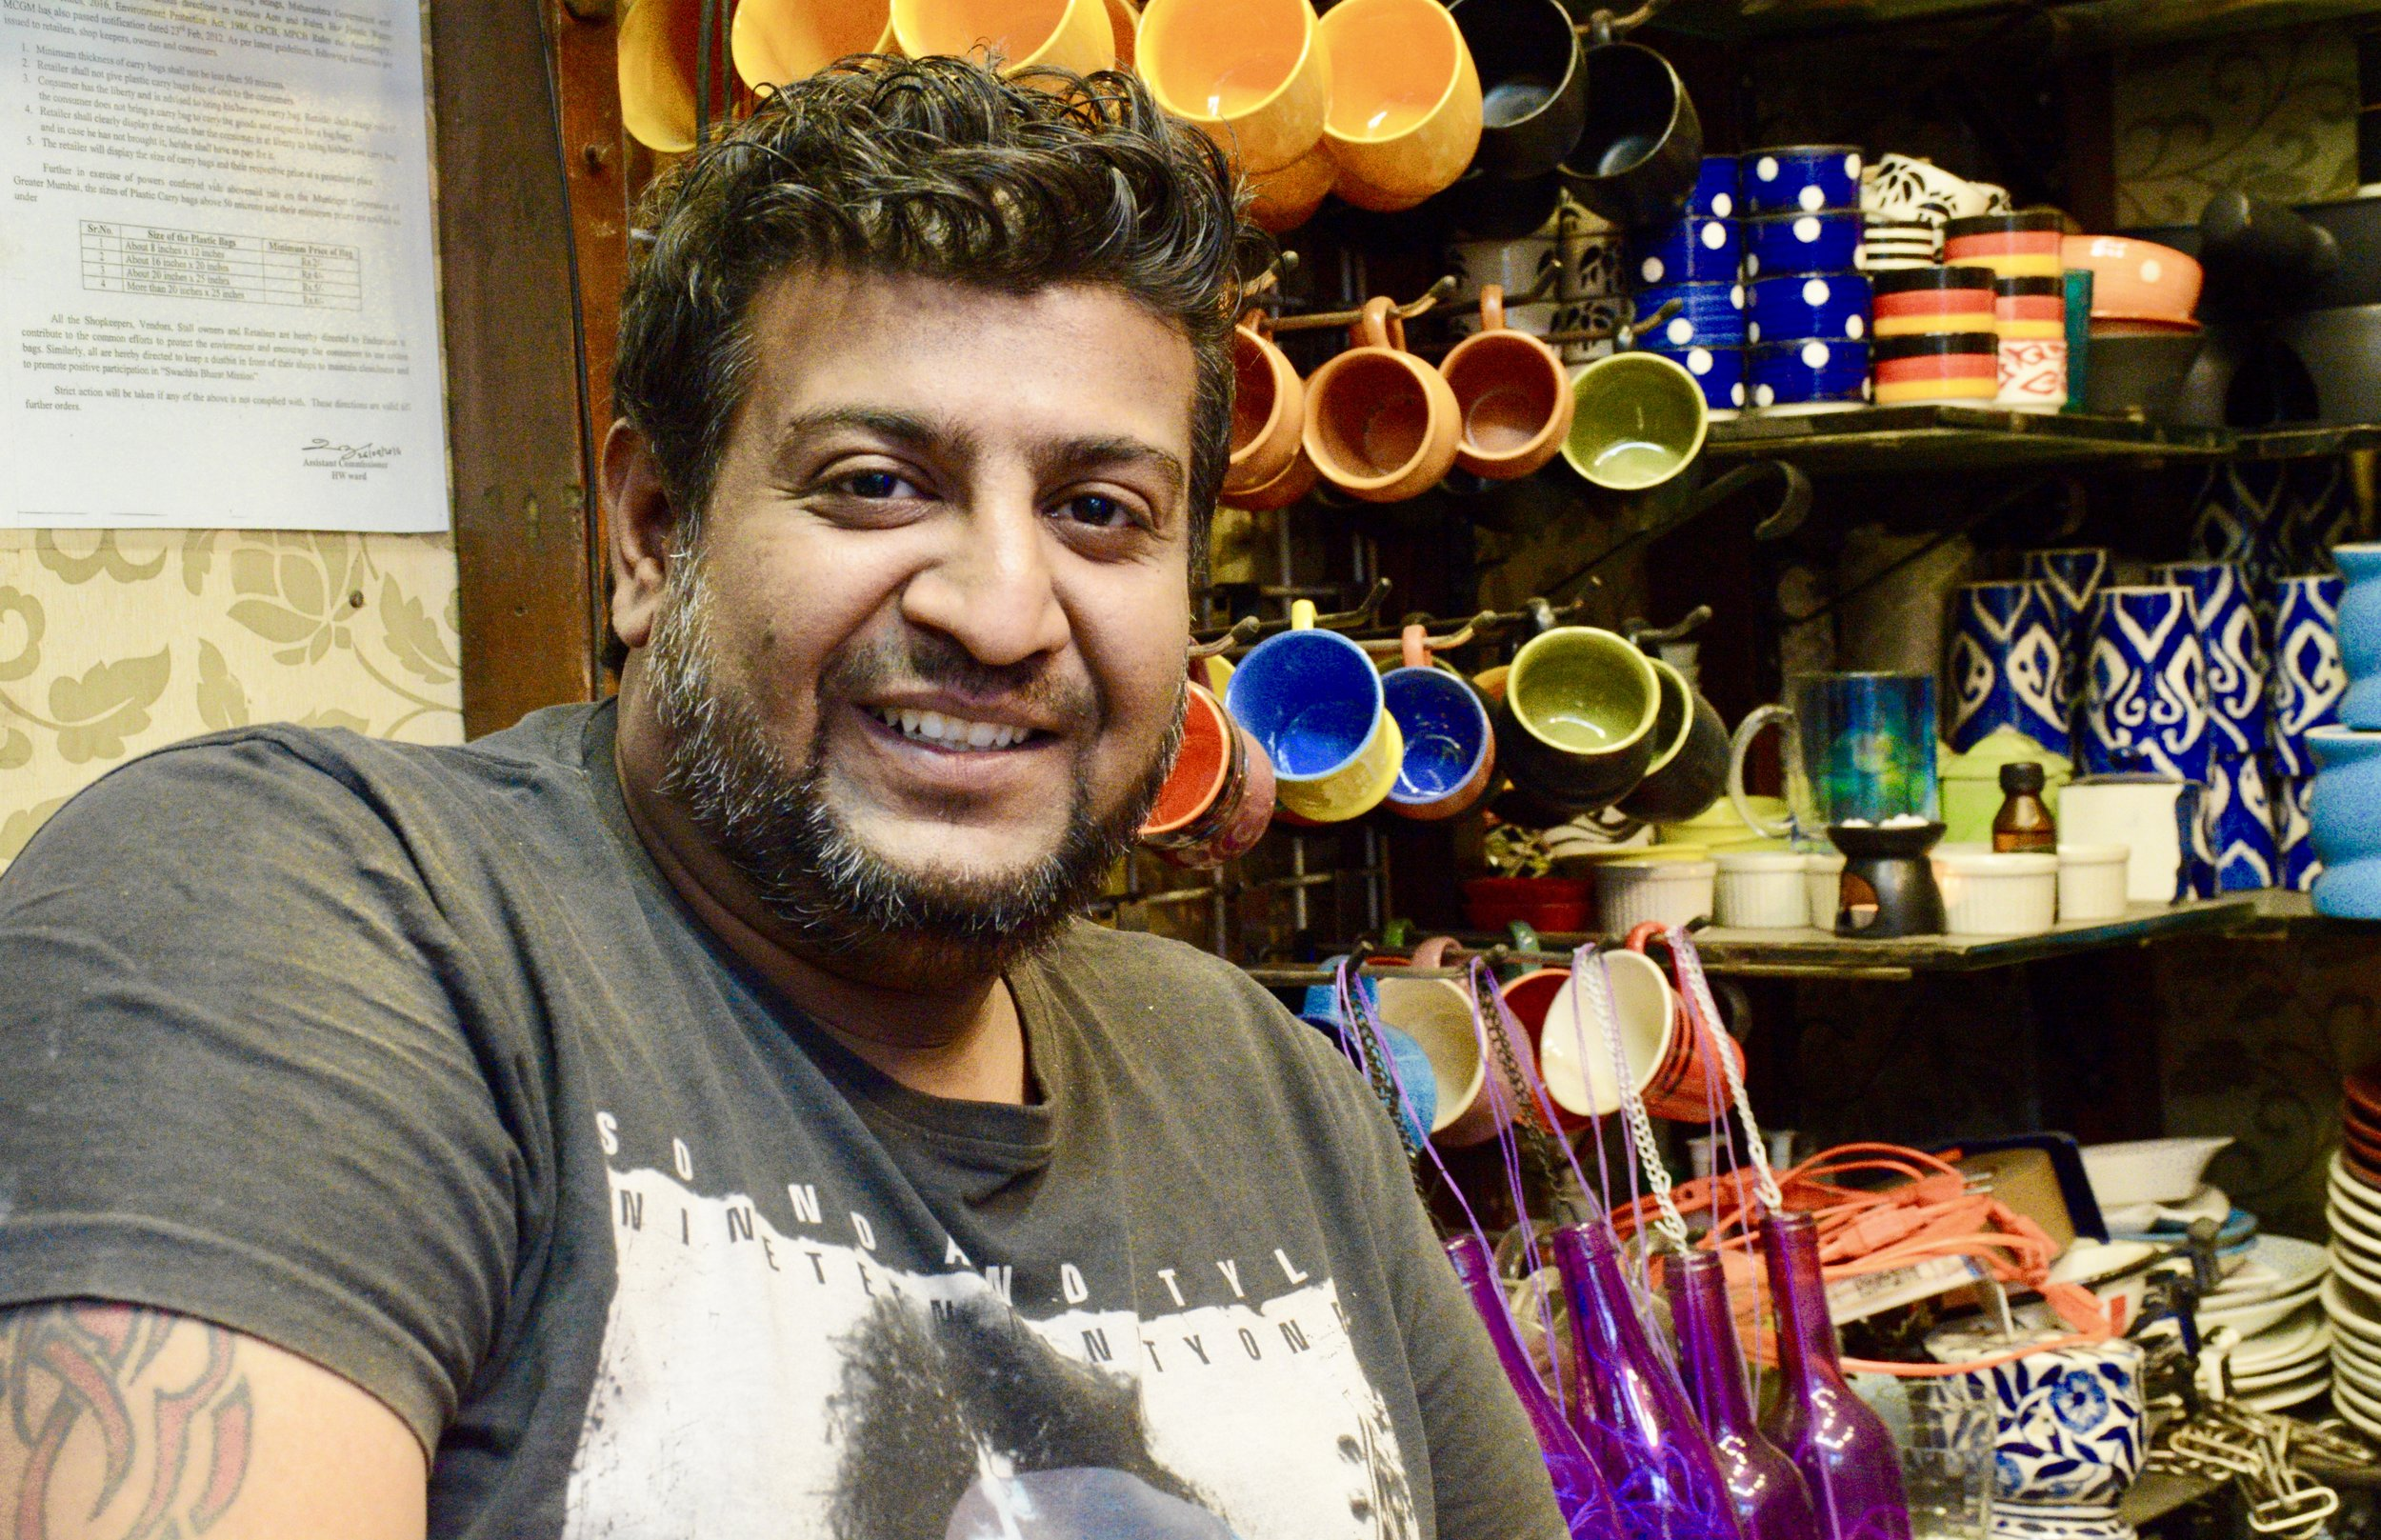 The group's most enlightening interview occurred with a assorted ceramics store owner who, despite having access to a POS machine prior to demonetization, still conducted a majority of his transactions in cash. Having lost 80% of his business since demonetization, he is no longer able to cover his business expenses.